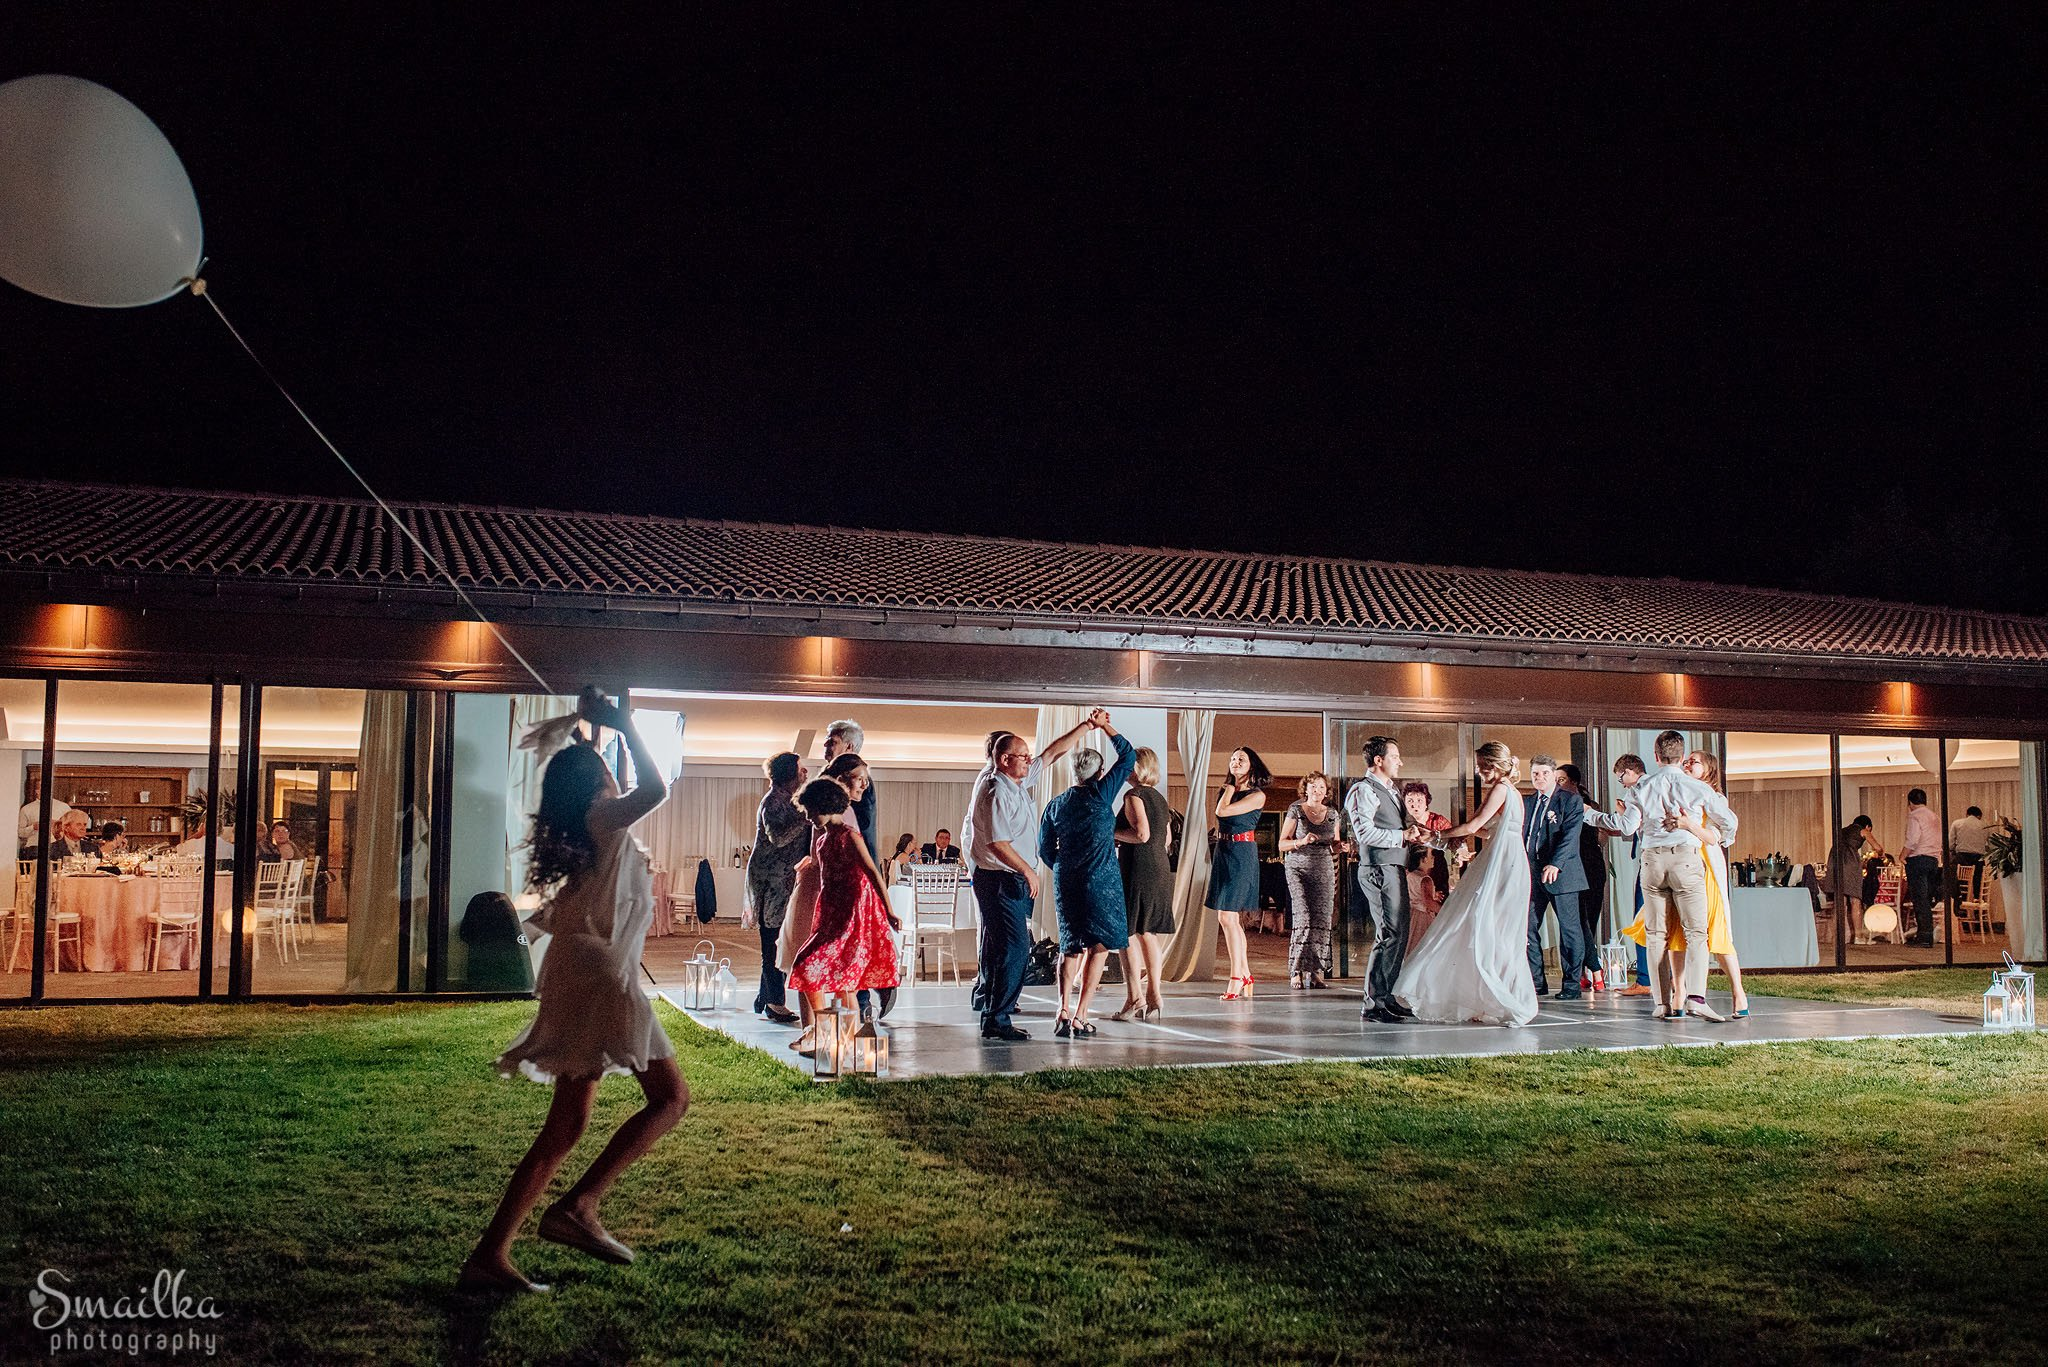 Wedding couple and guests dancing at night at Black Sea Rama